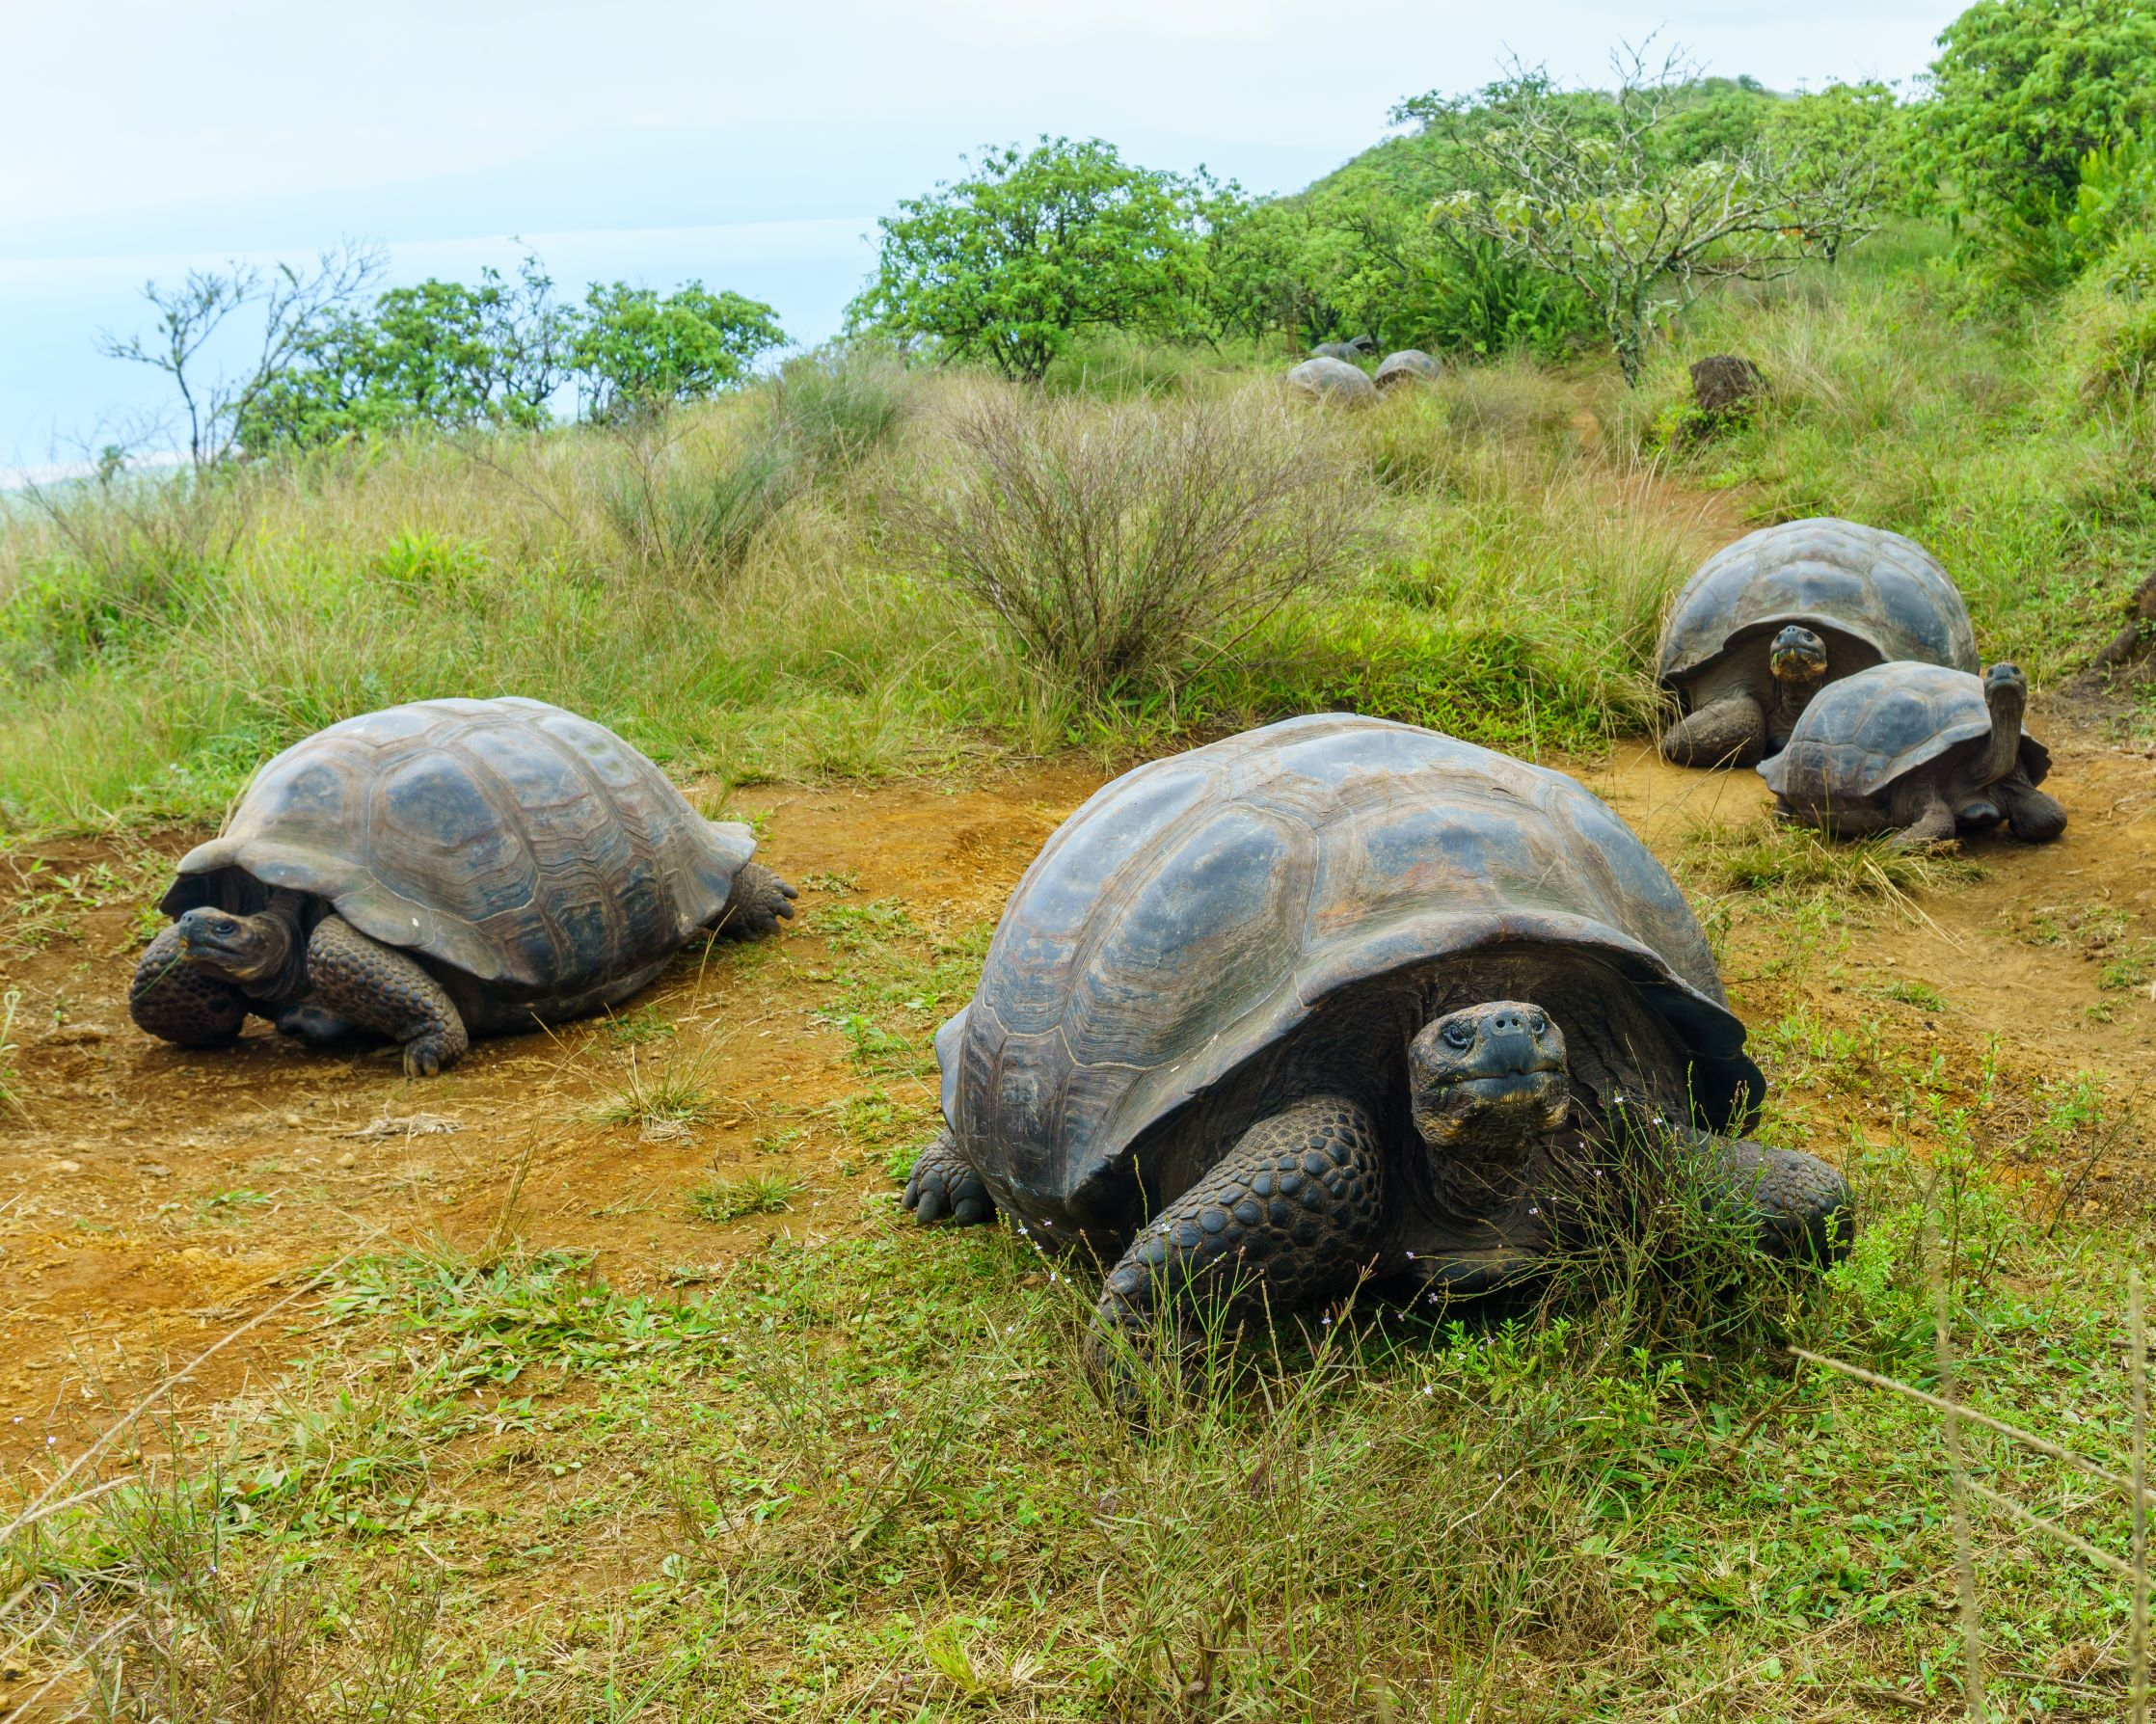 Test2 02644 smaller - Giant Tortoises Migrate Unpredictably in the Face of Climate Change